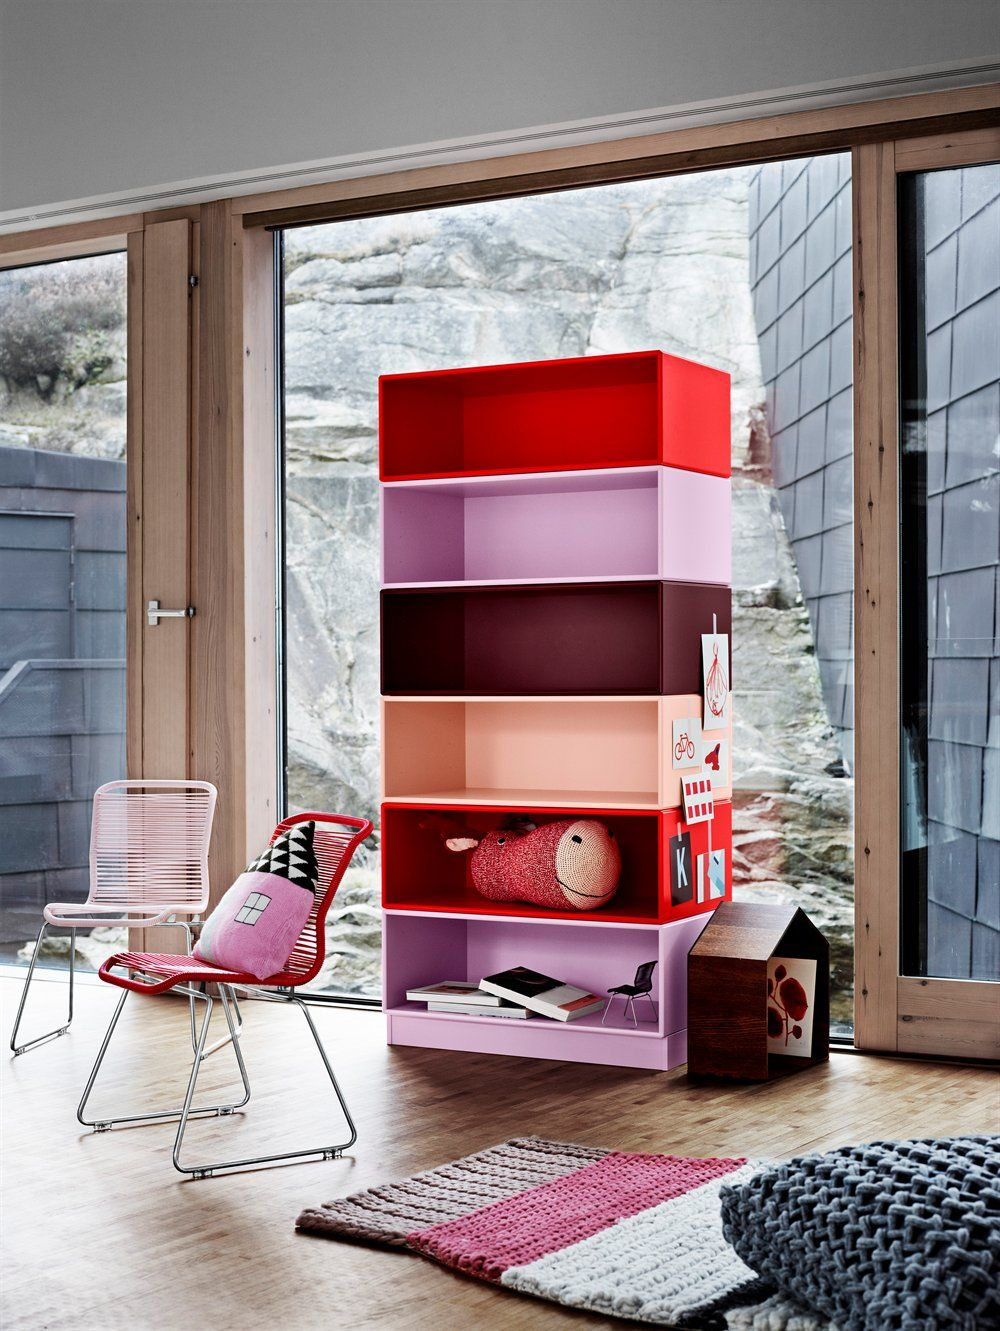 Rooms By Design Furniture Store: Playful Colours In The Children's Playroom. #montana